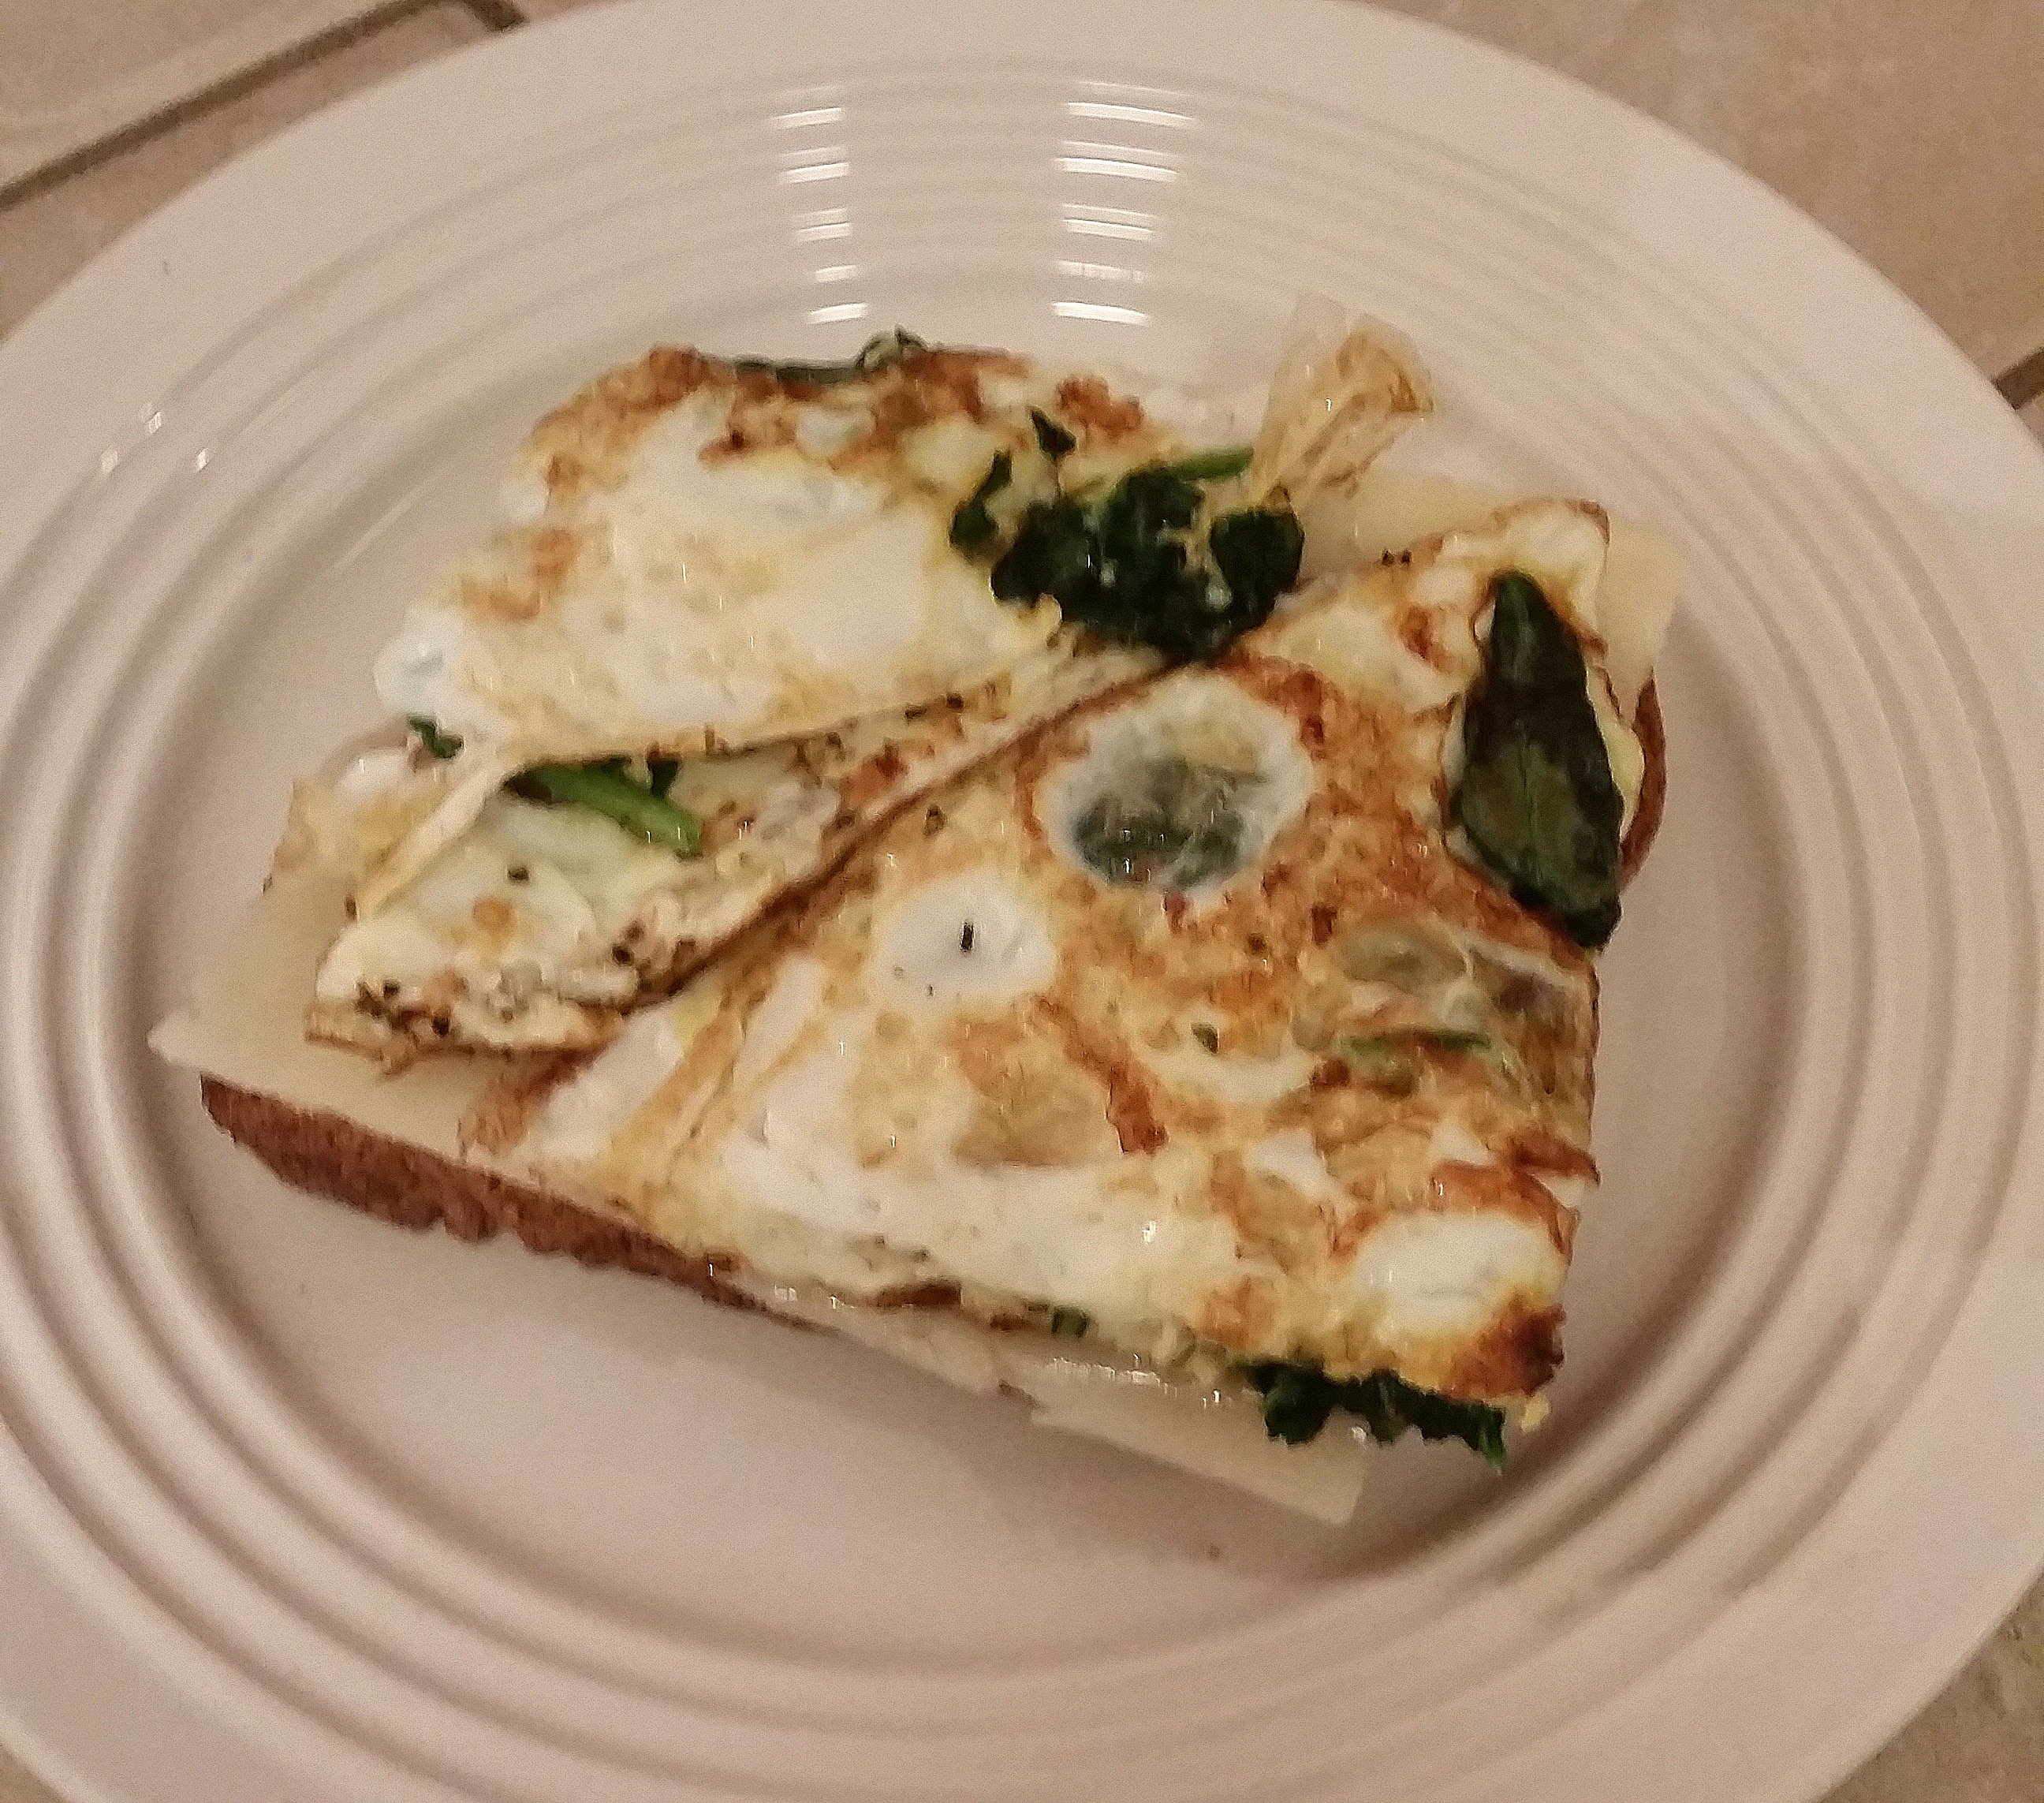 egg white omelette with cheese on toast